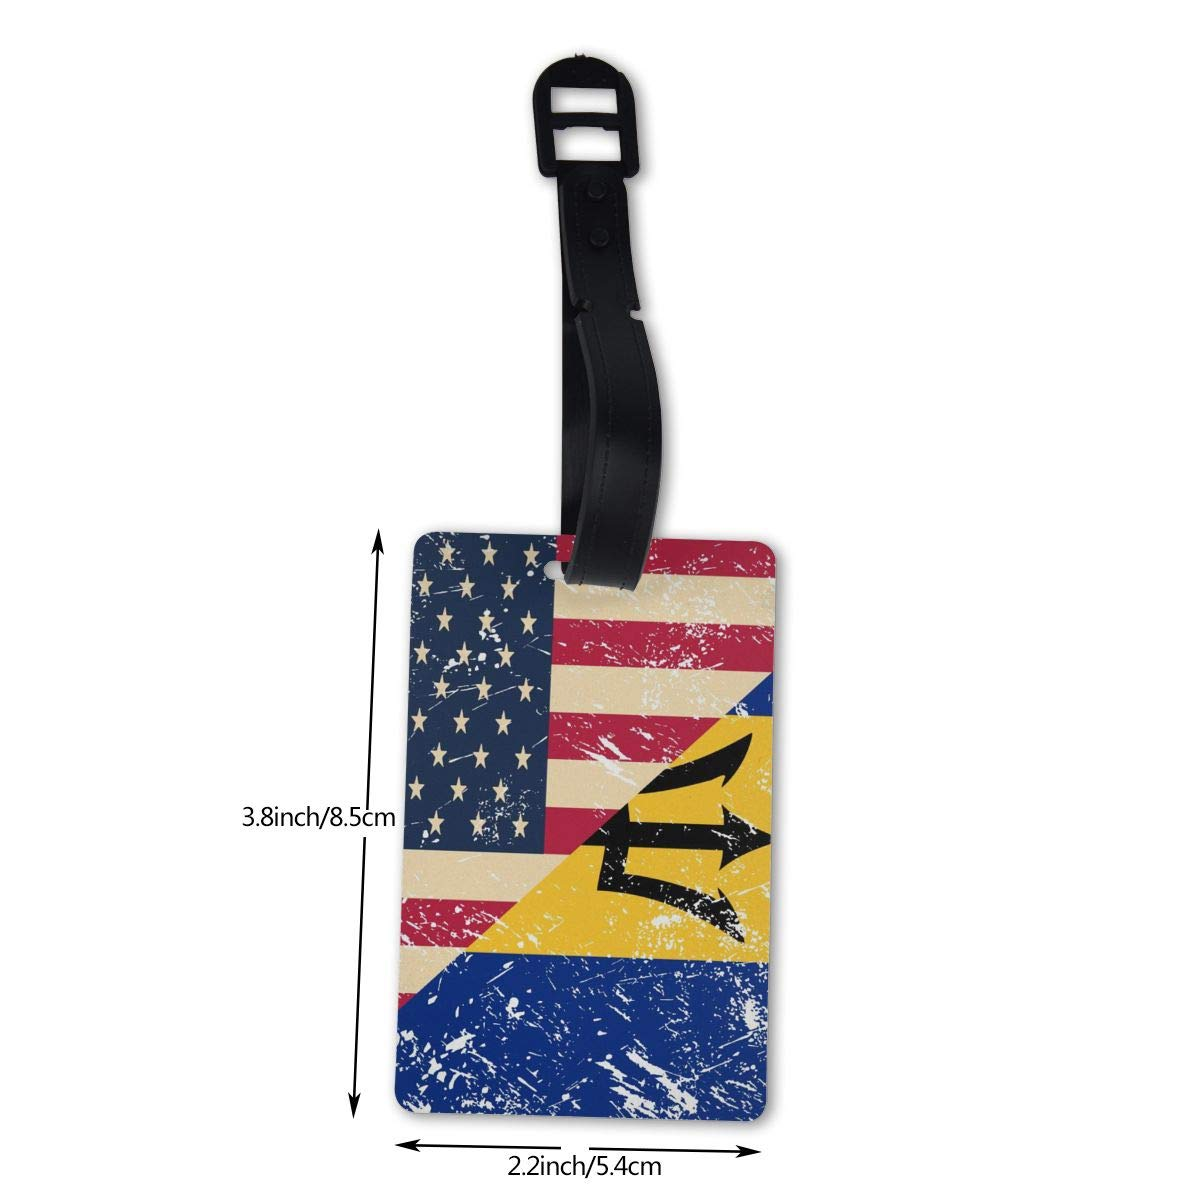 NB UUD USA and Barbados Retro Flag Travel Luggage Tag Portable Employees Card Luggage Tag Holders Travel ID Identification Labels for Baggage Suitcases Bags